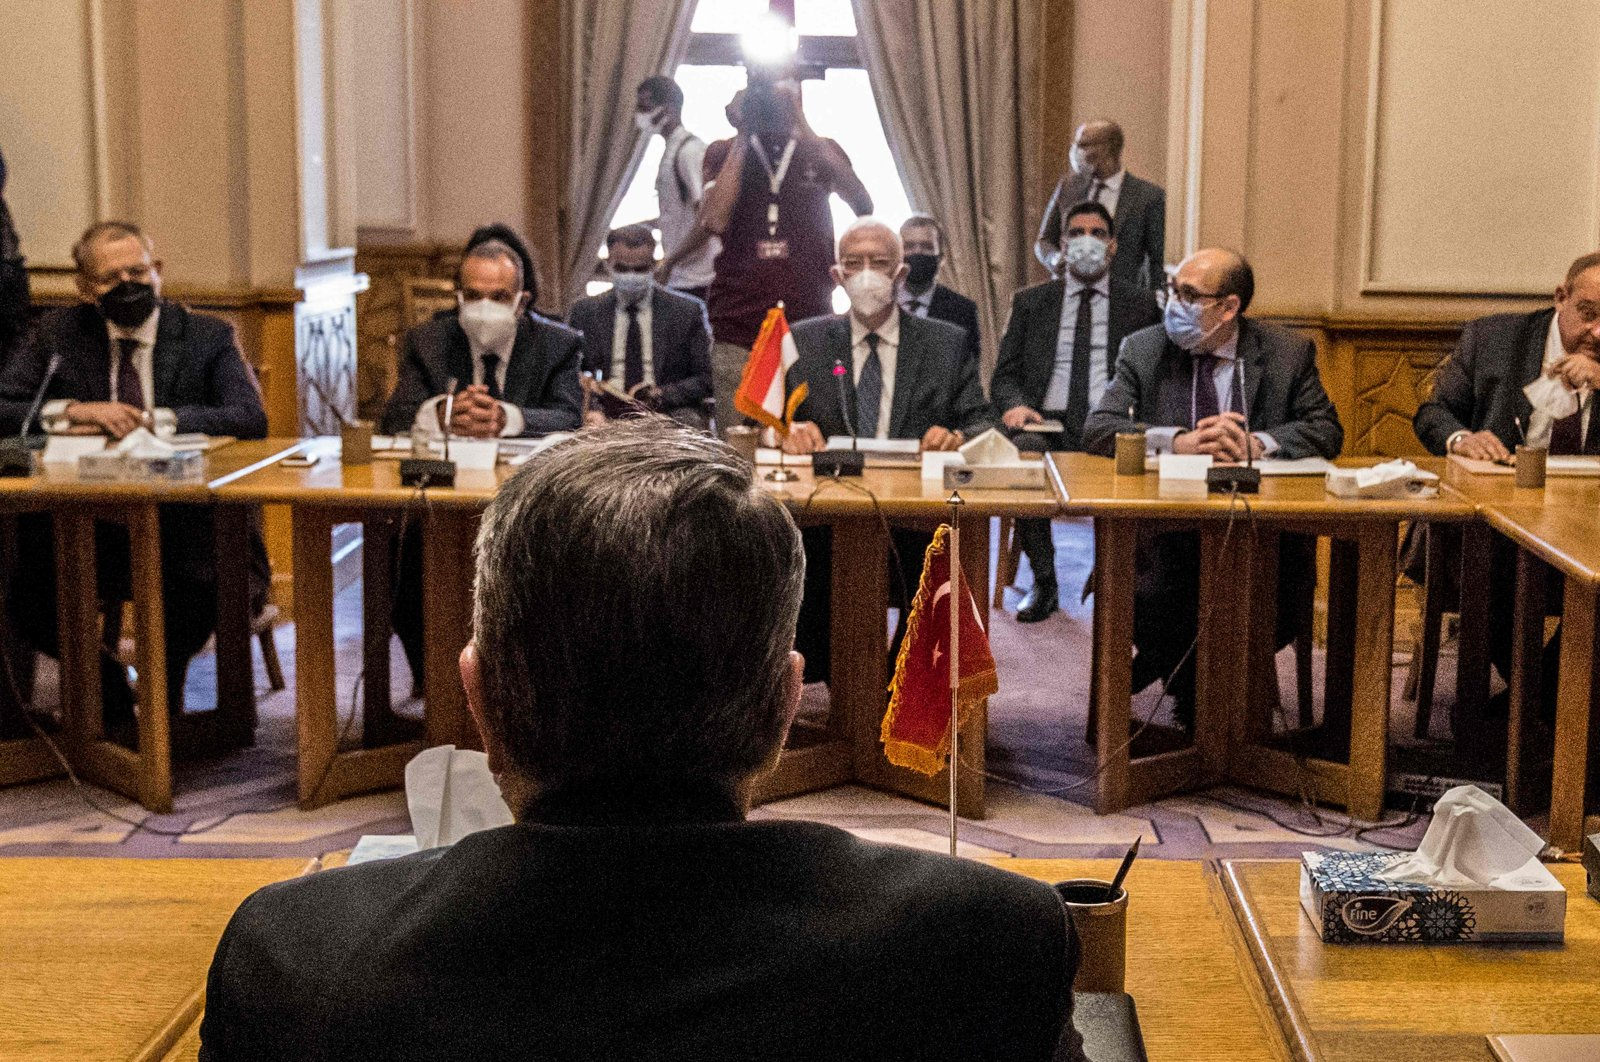 Egypt's Deputy Foreign Minister Hamdi Sanad Loza (background) meets with his Turkish counterpart Sedat Önal (Foreground) in the foreign ministry headquarters in the Egyptian capital Cairo, May 5, 2021. (AFP Photo)